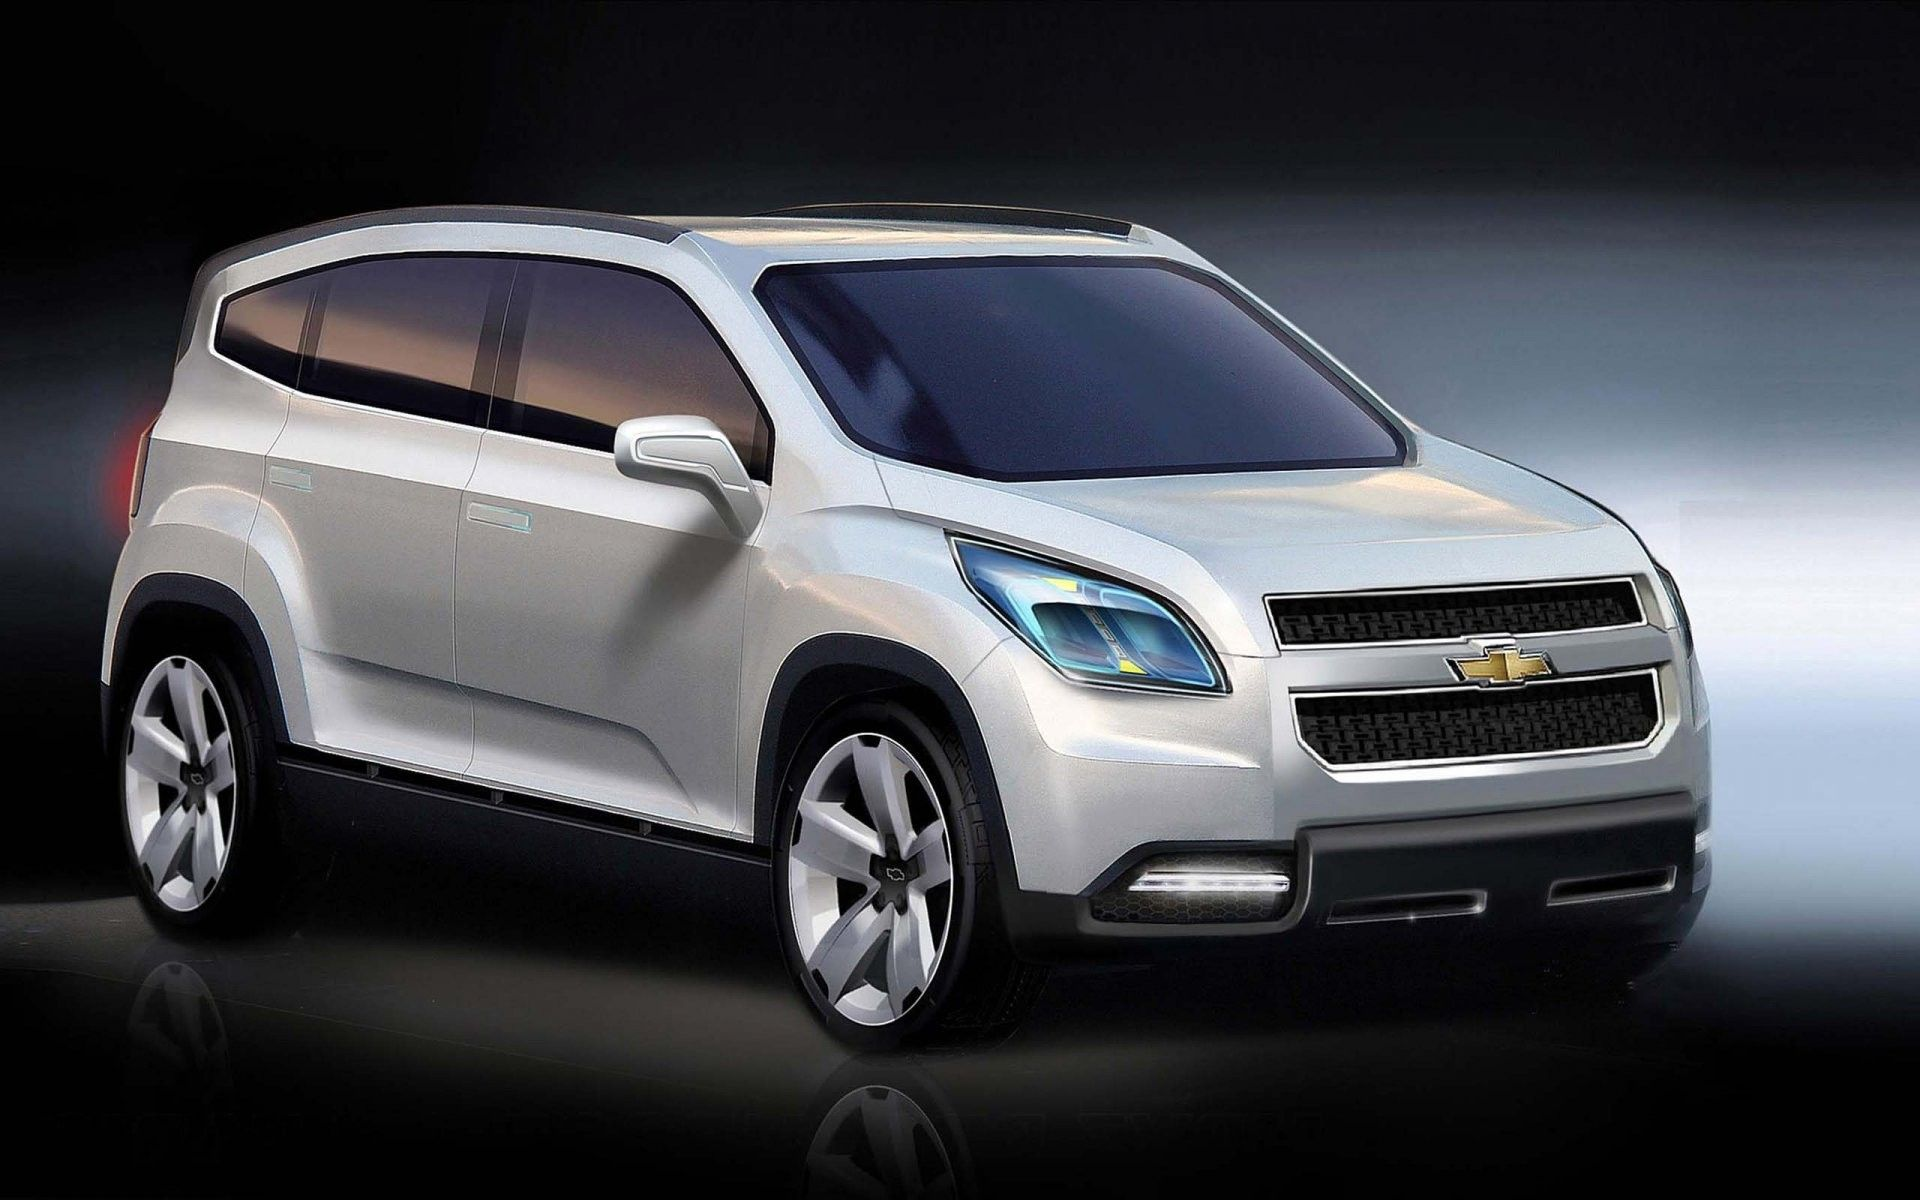 Car Chevrolet Orlando Wallpaper 1920x1200